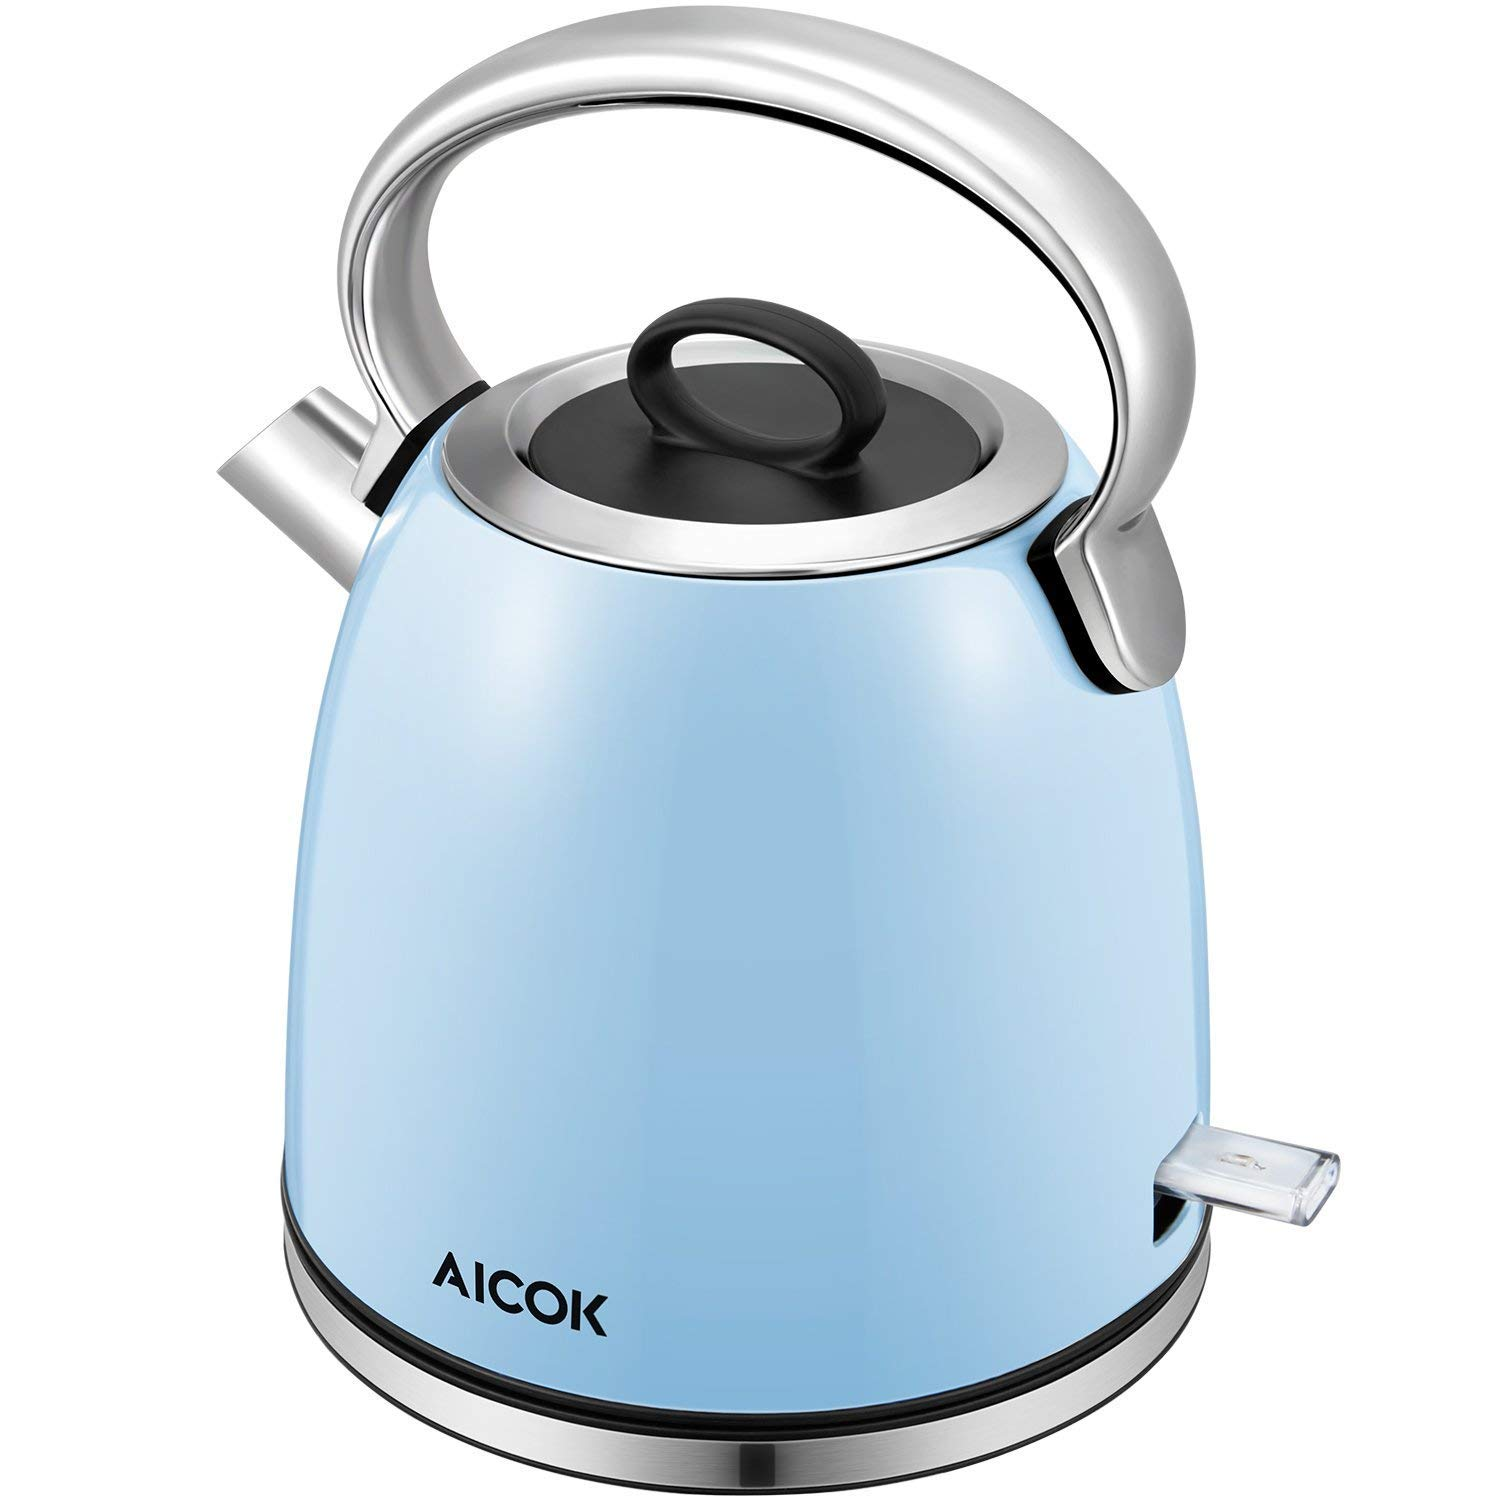 Aicok Kettles Electric Brushed Blue Coating Stainless Steel kettle, 1.7L Fast Boil Cordless Kettle with Wide Spout and Limescale Filter, Auto Shut Off Tea Kettle, 3000W